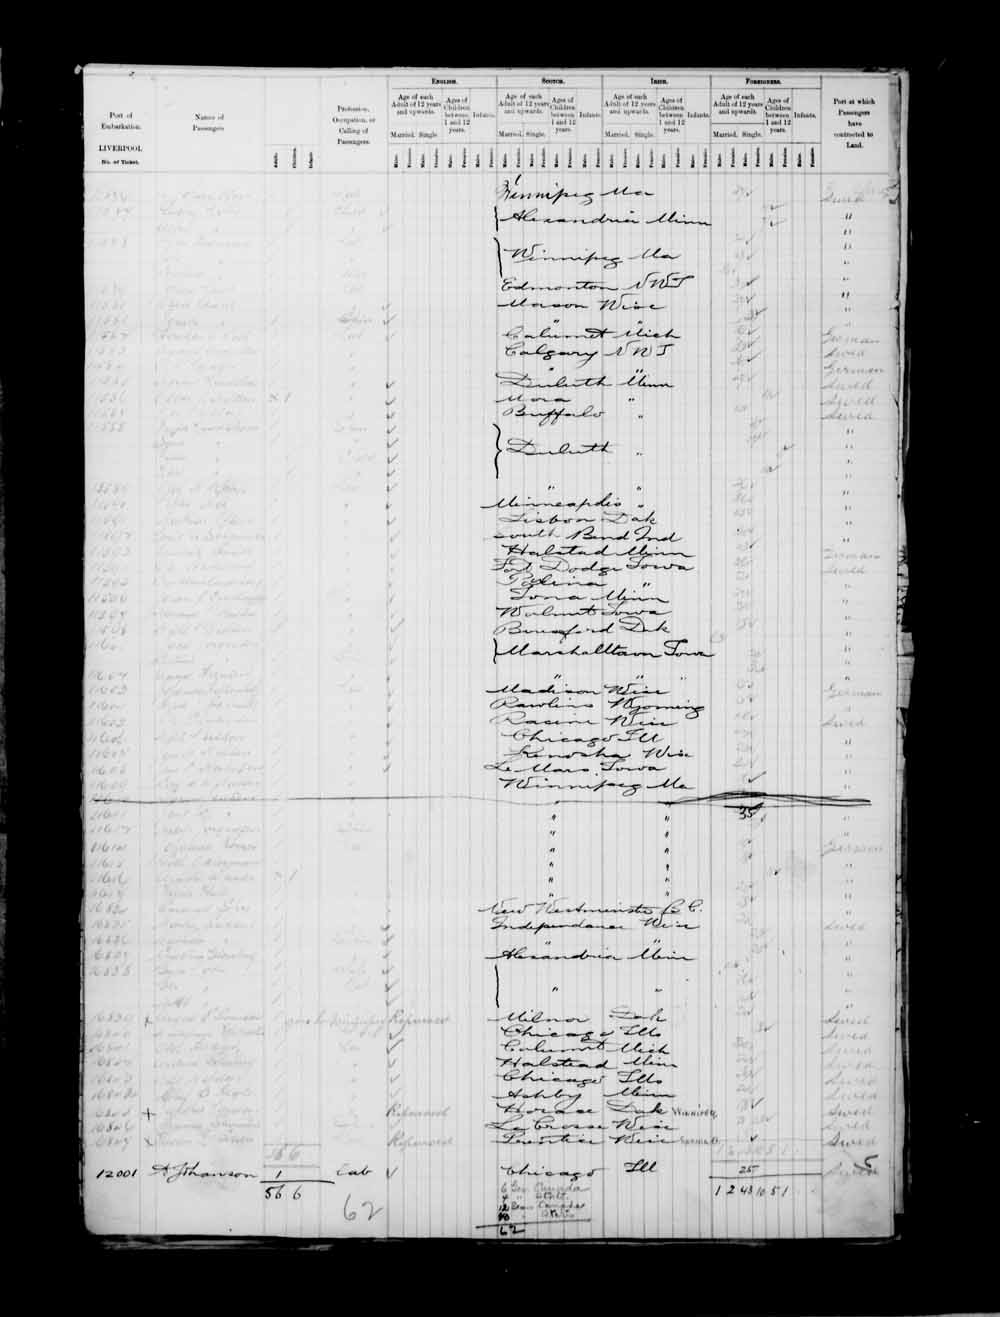 Digitized page of Passenger Lists for Image No.: e003679119